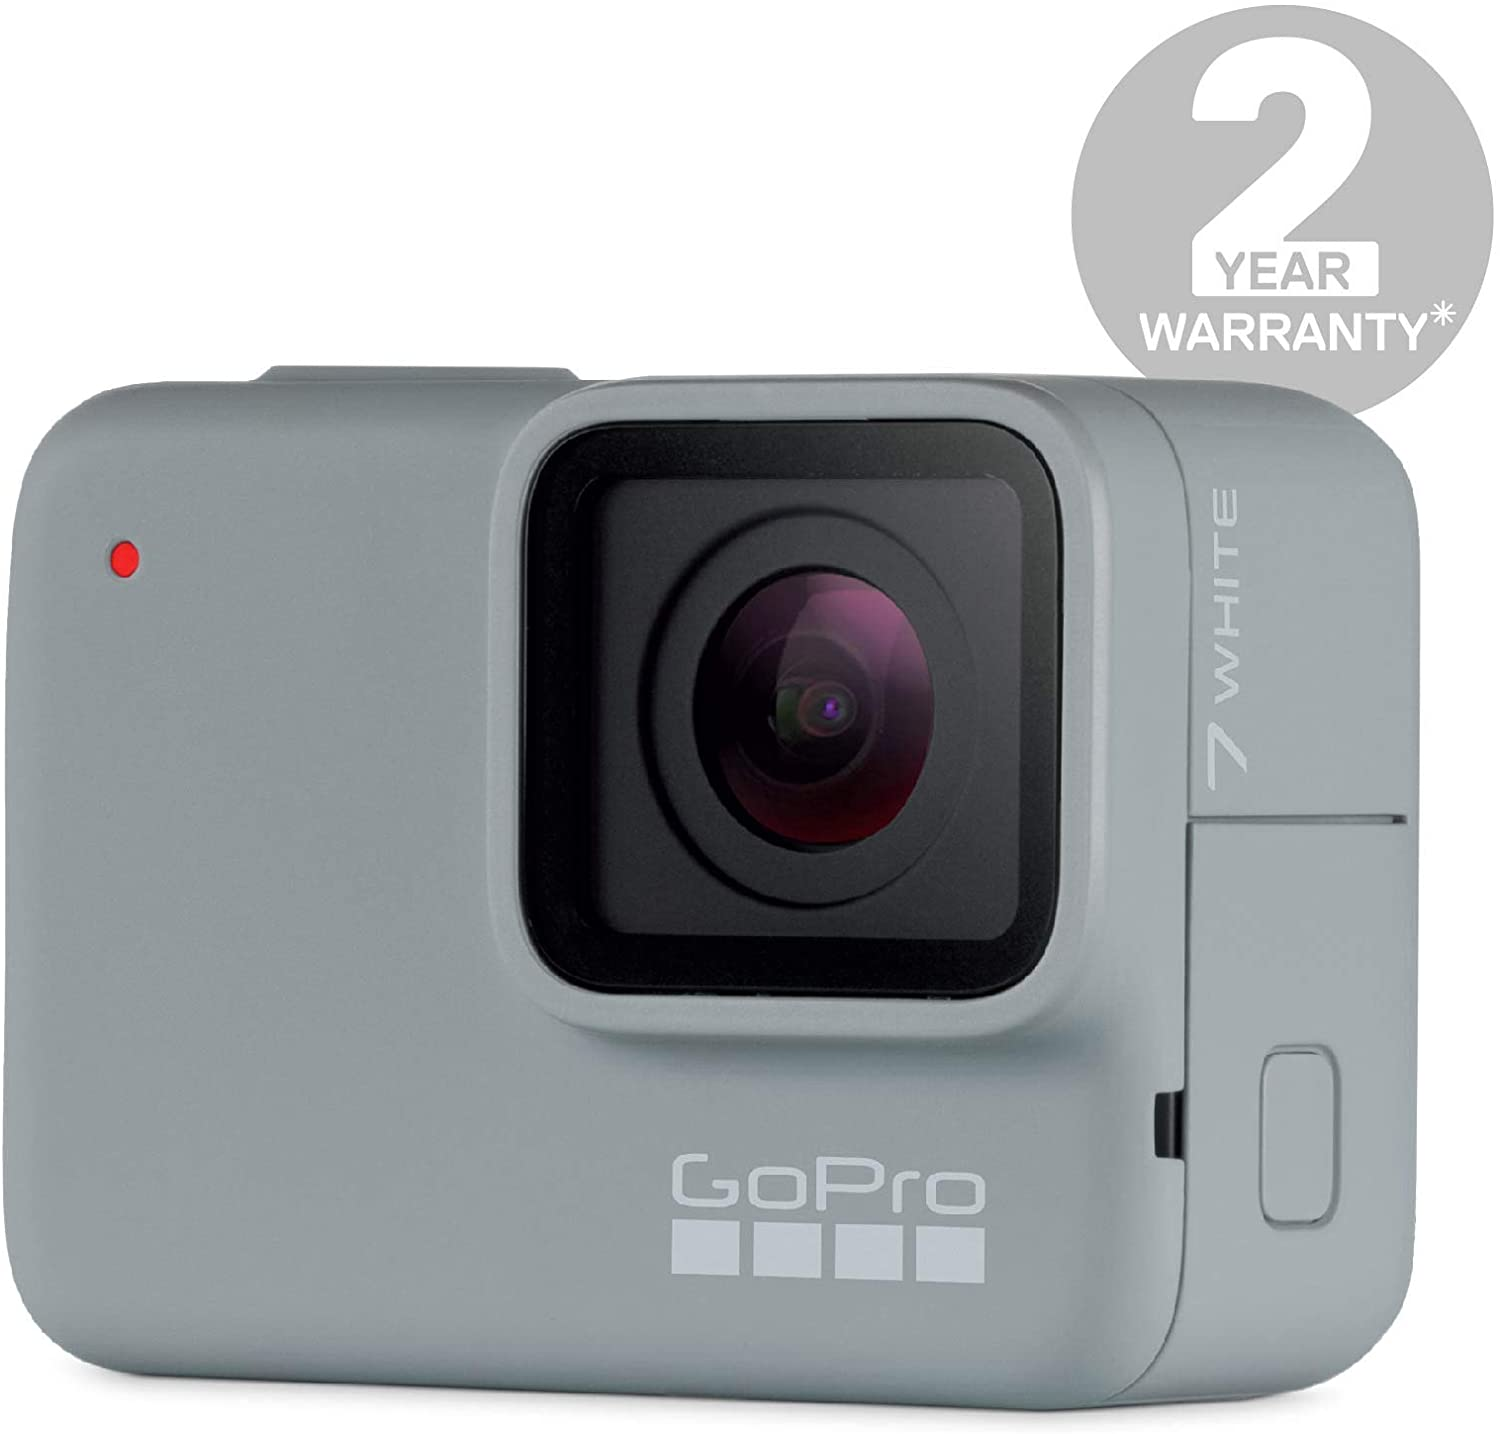 Gopro Hero7 White Wasserdichte Digitale Actionkamera Camera Photo